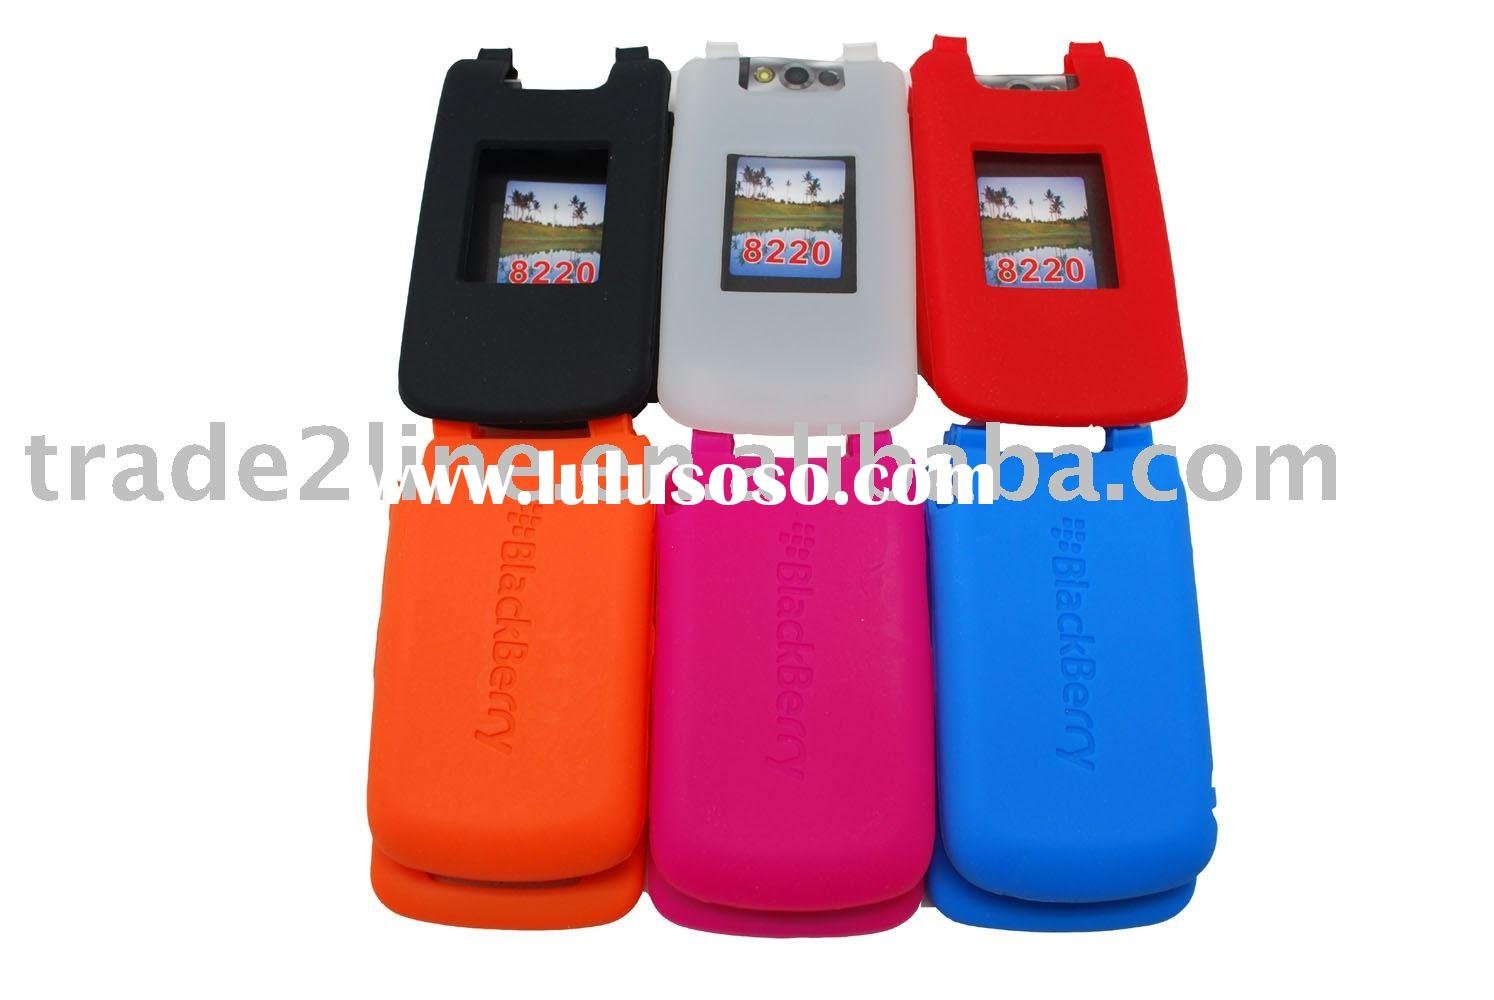 Silicon case for BlackBerry 8220,accessories for BlackBerry